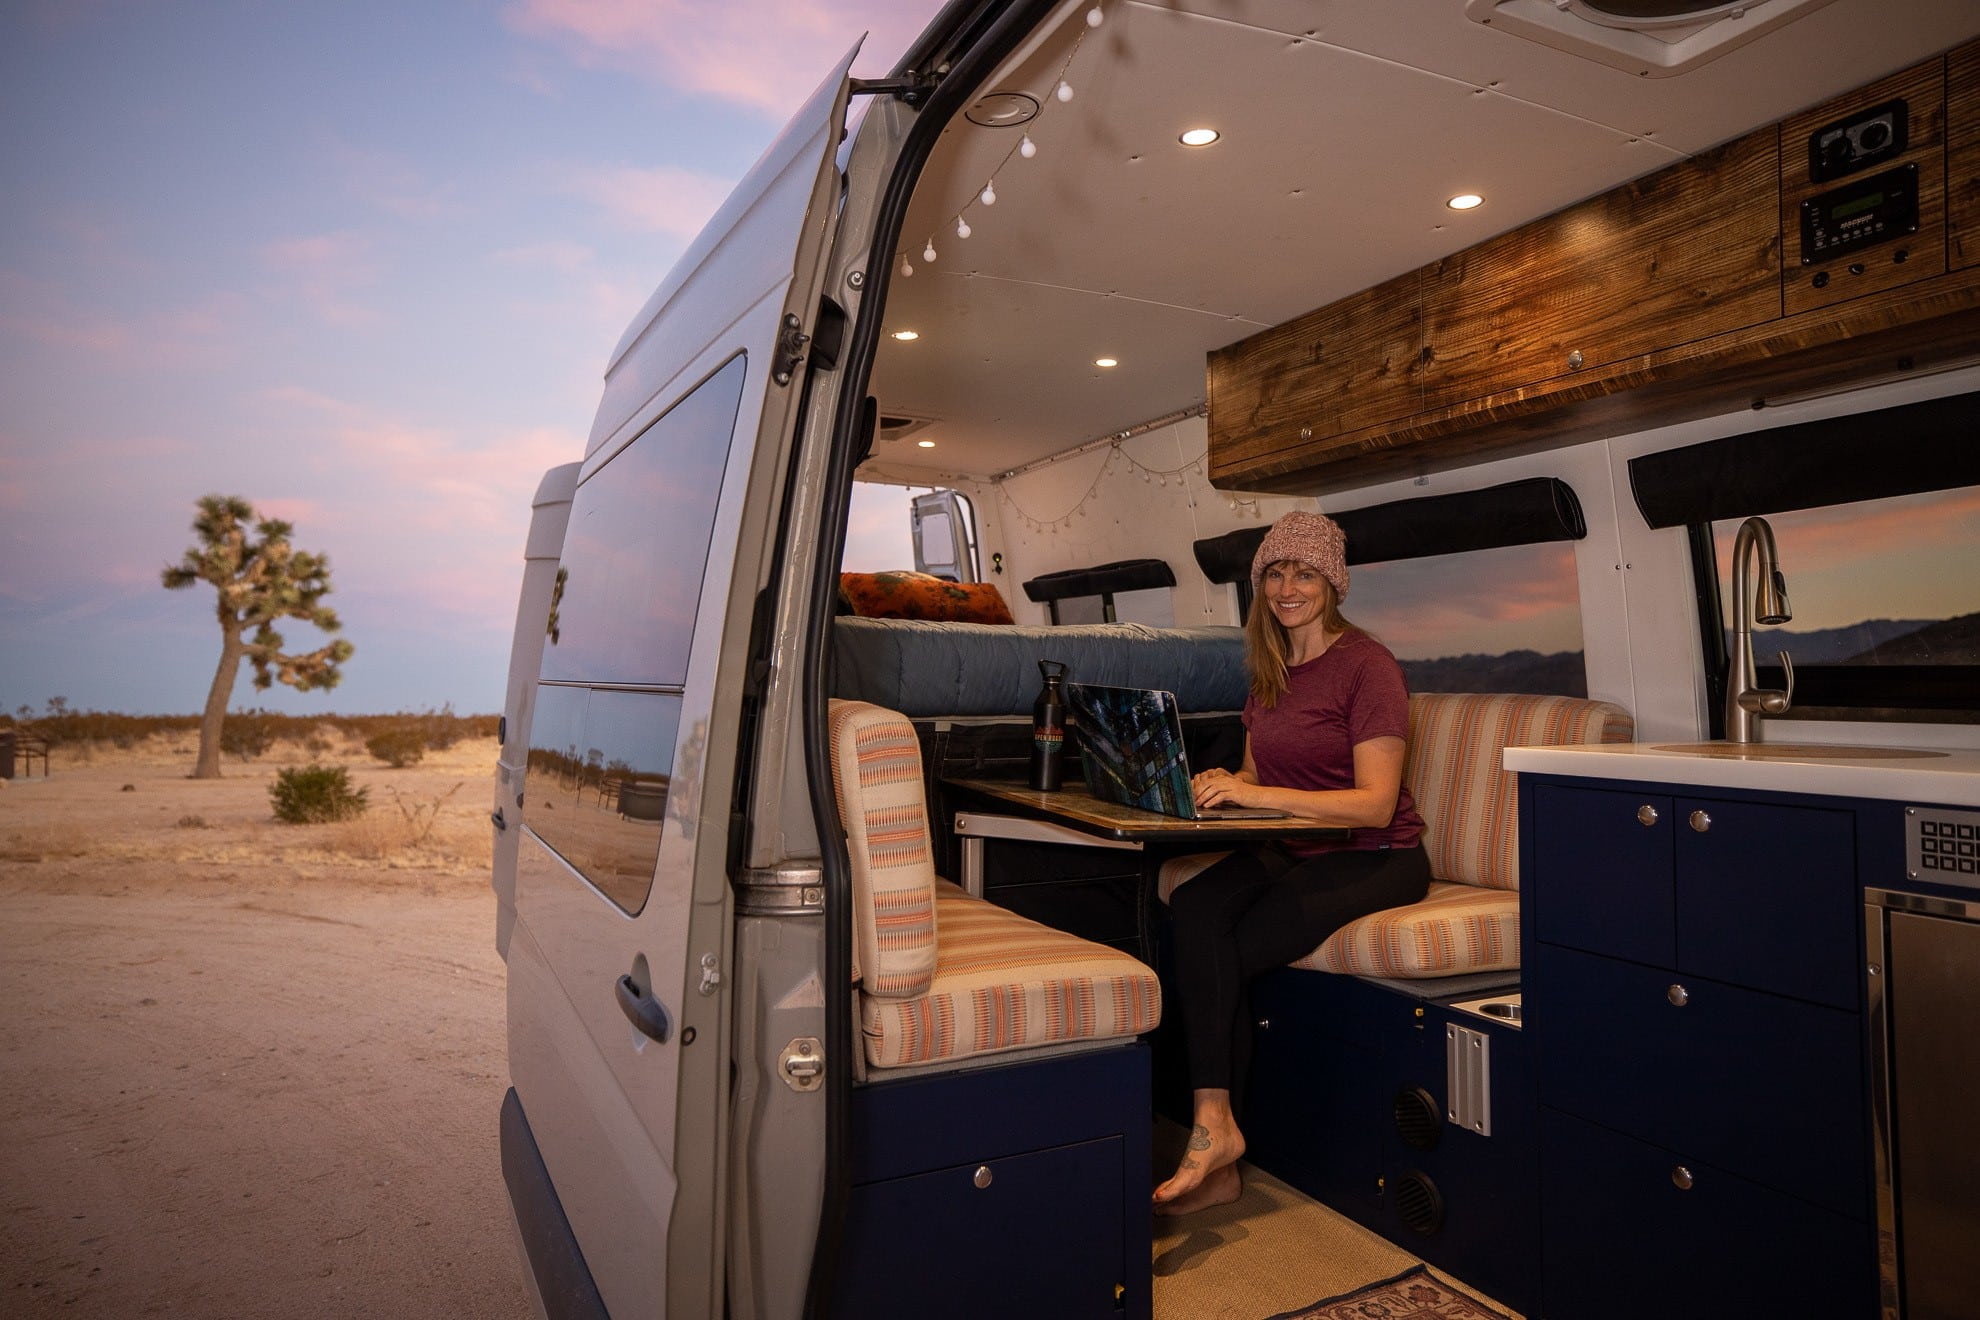 20 Remote Jobs for Van Lifers and Travelers